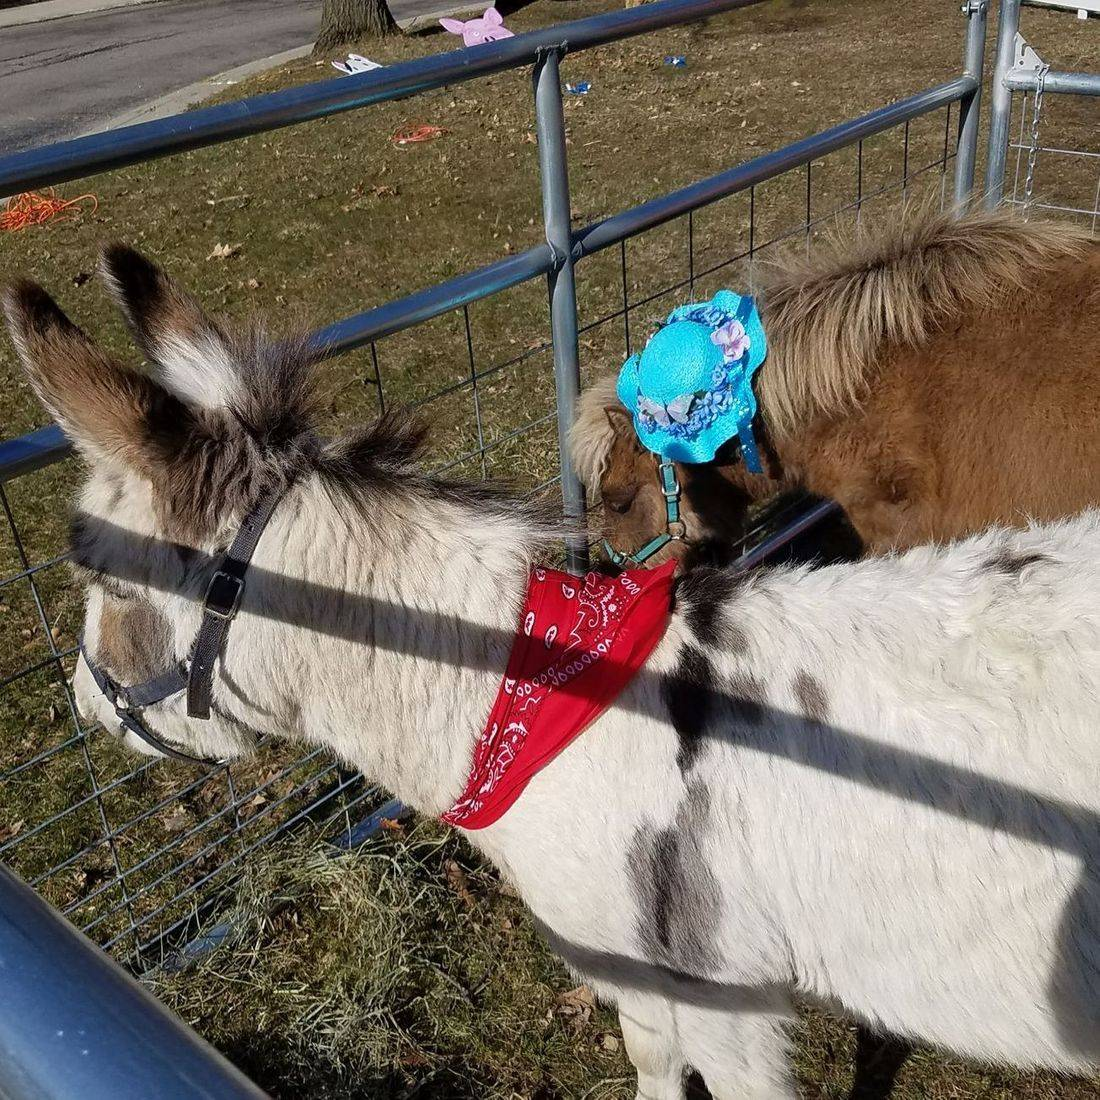 Miniature donkey in a petting zoo with a miniature horse